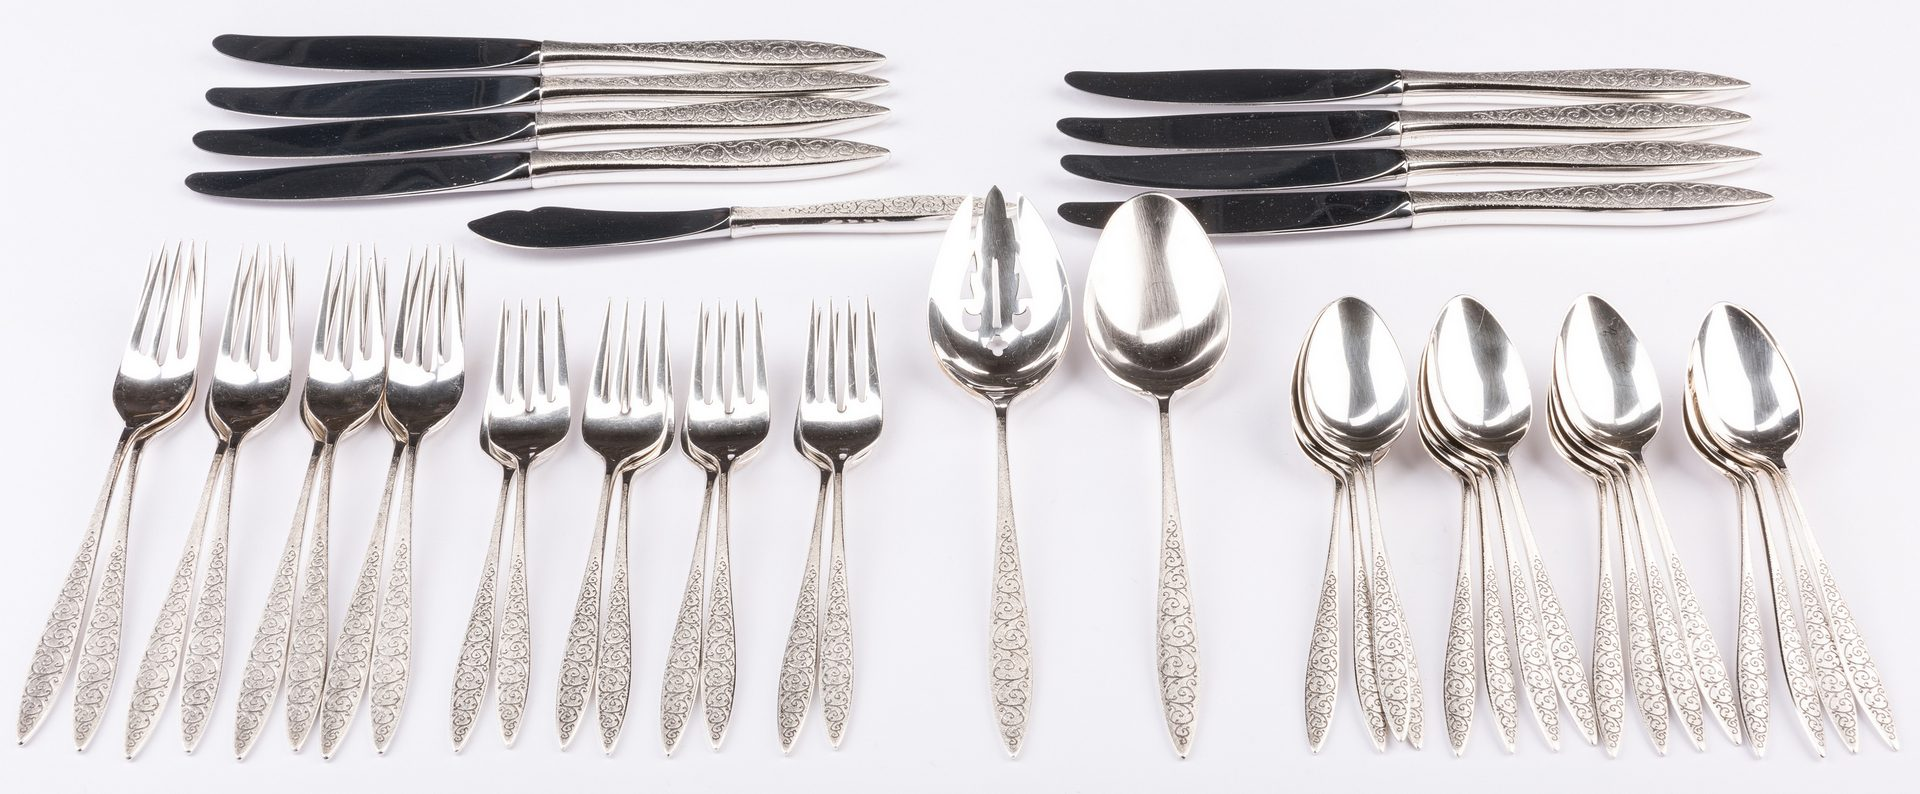 Lot 704: Wallace Sterling Flatware, Spanish Lace pattern, 43 pcs.